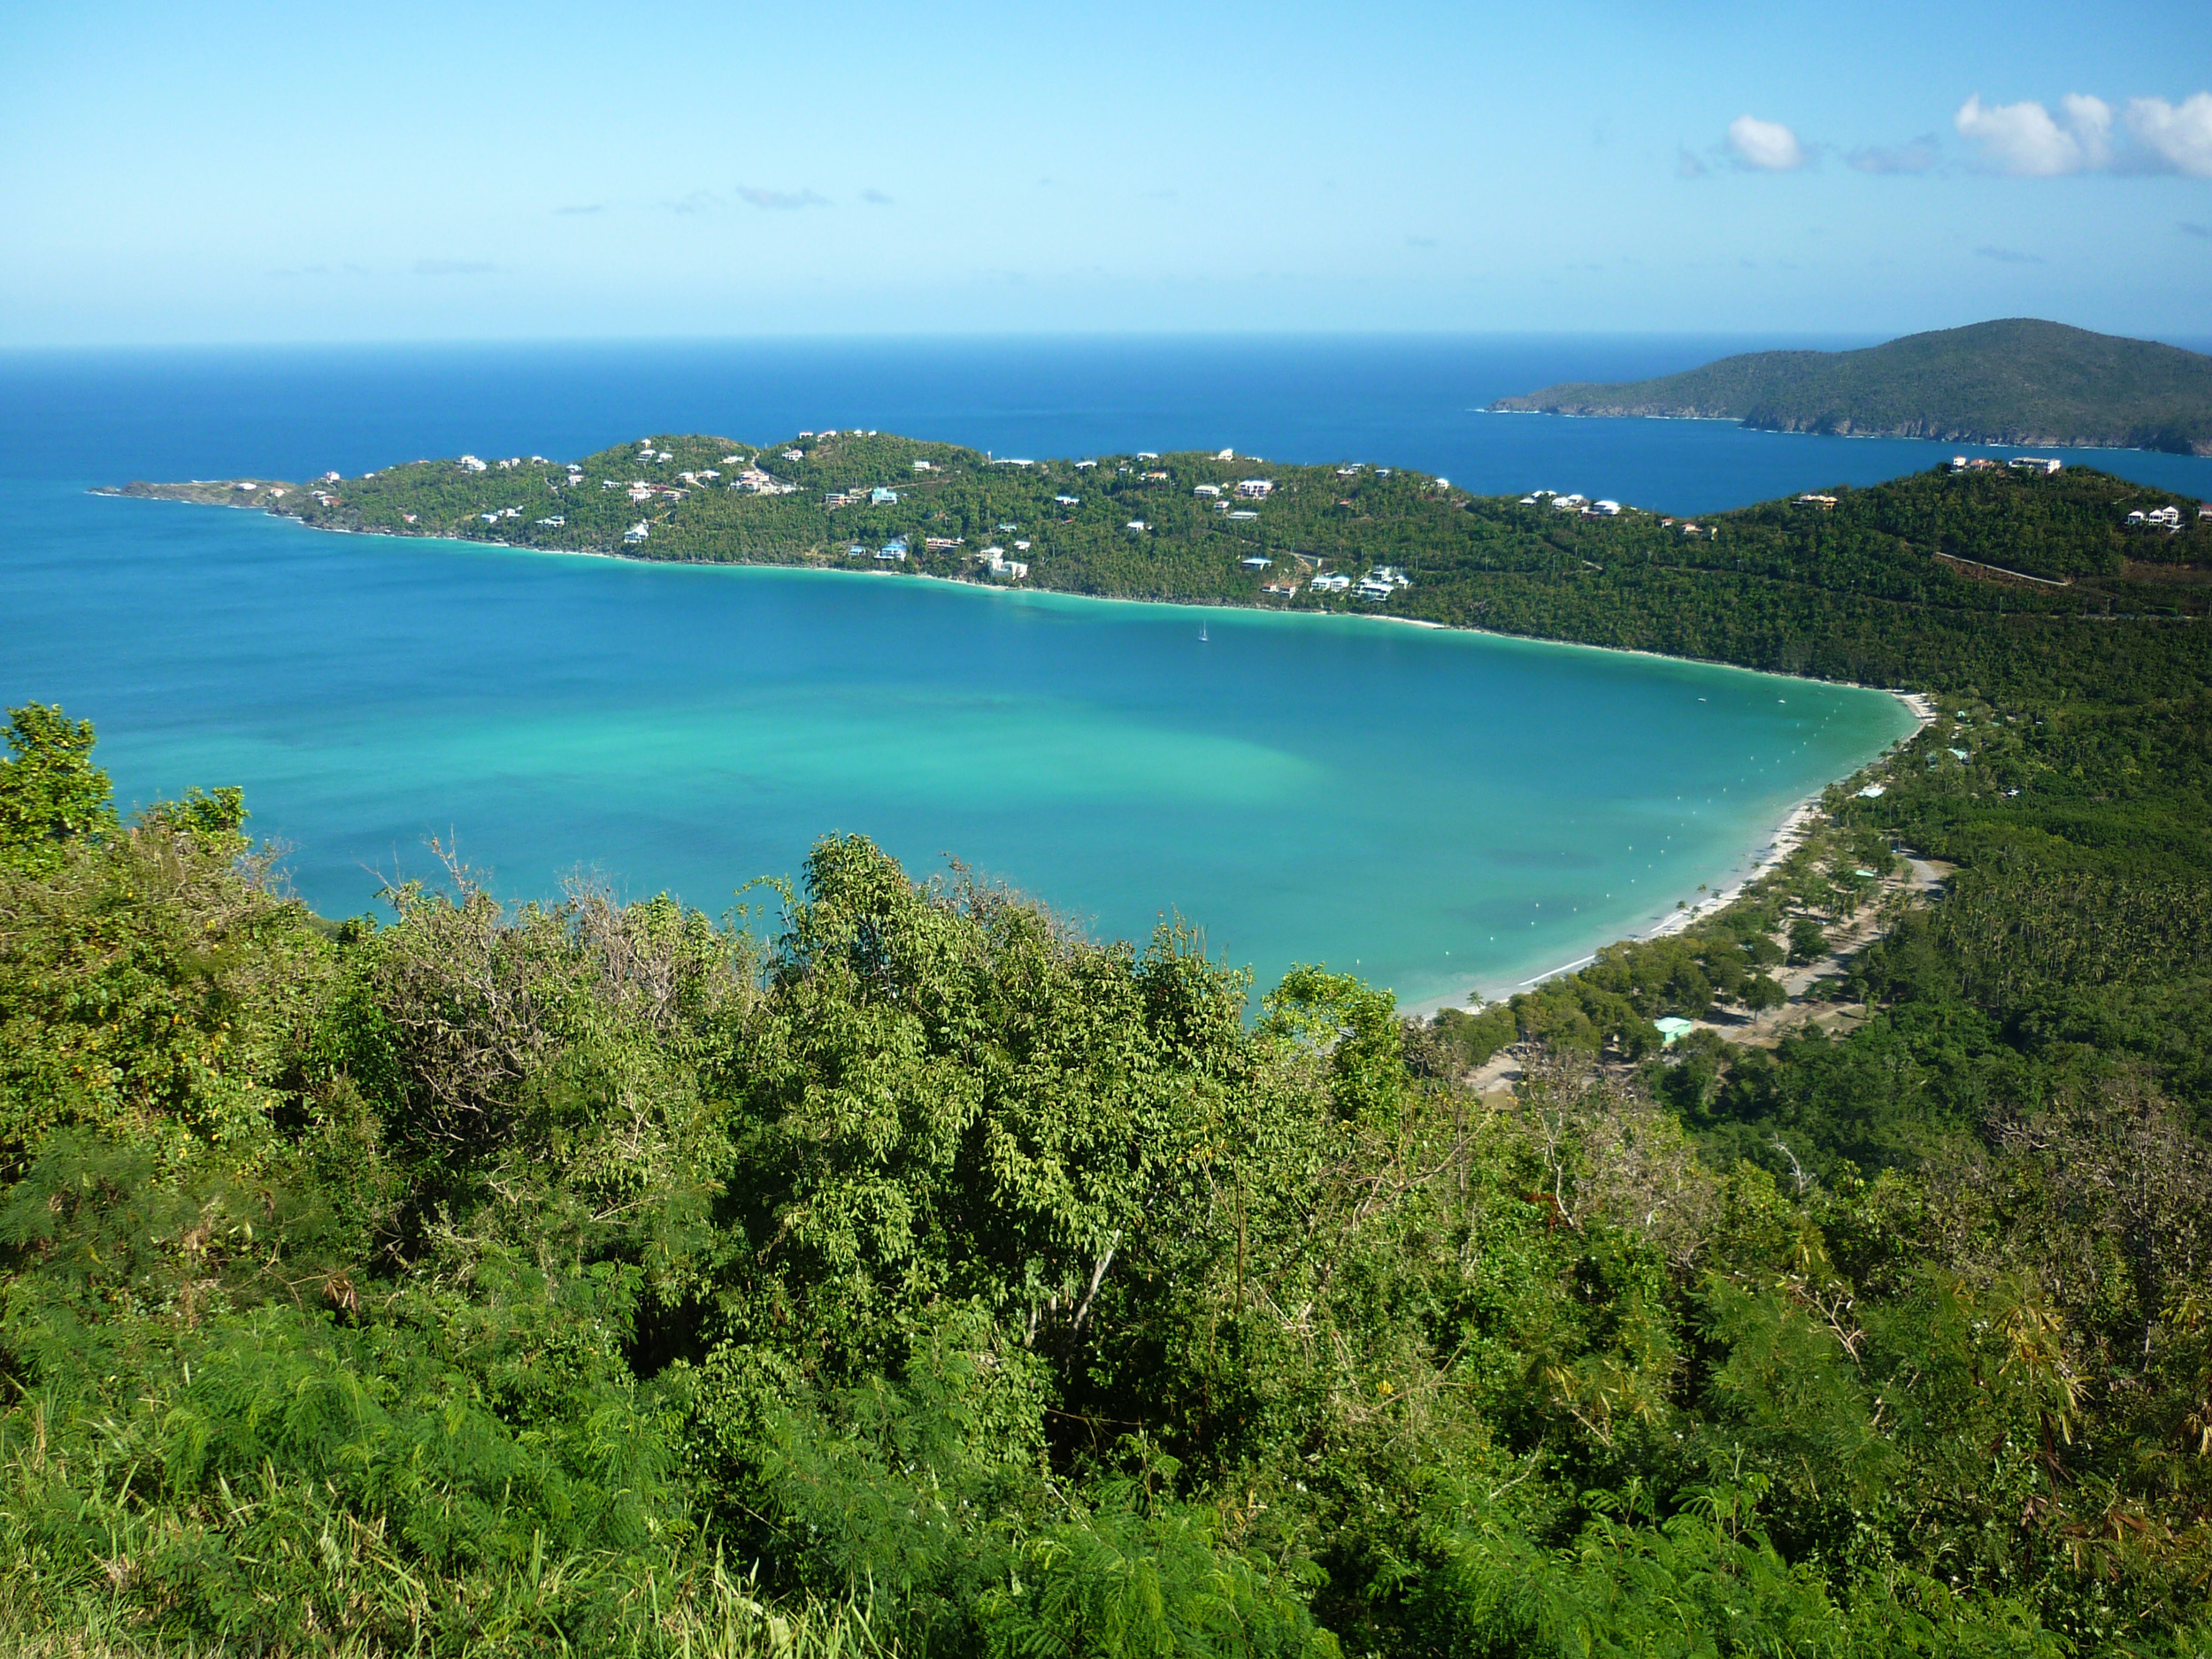 lookng down on a beautiful tropical bay on the island of st thomas